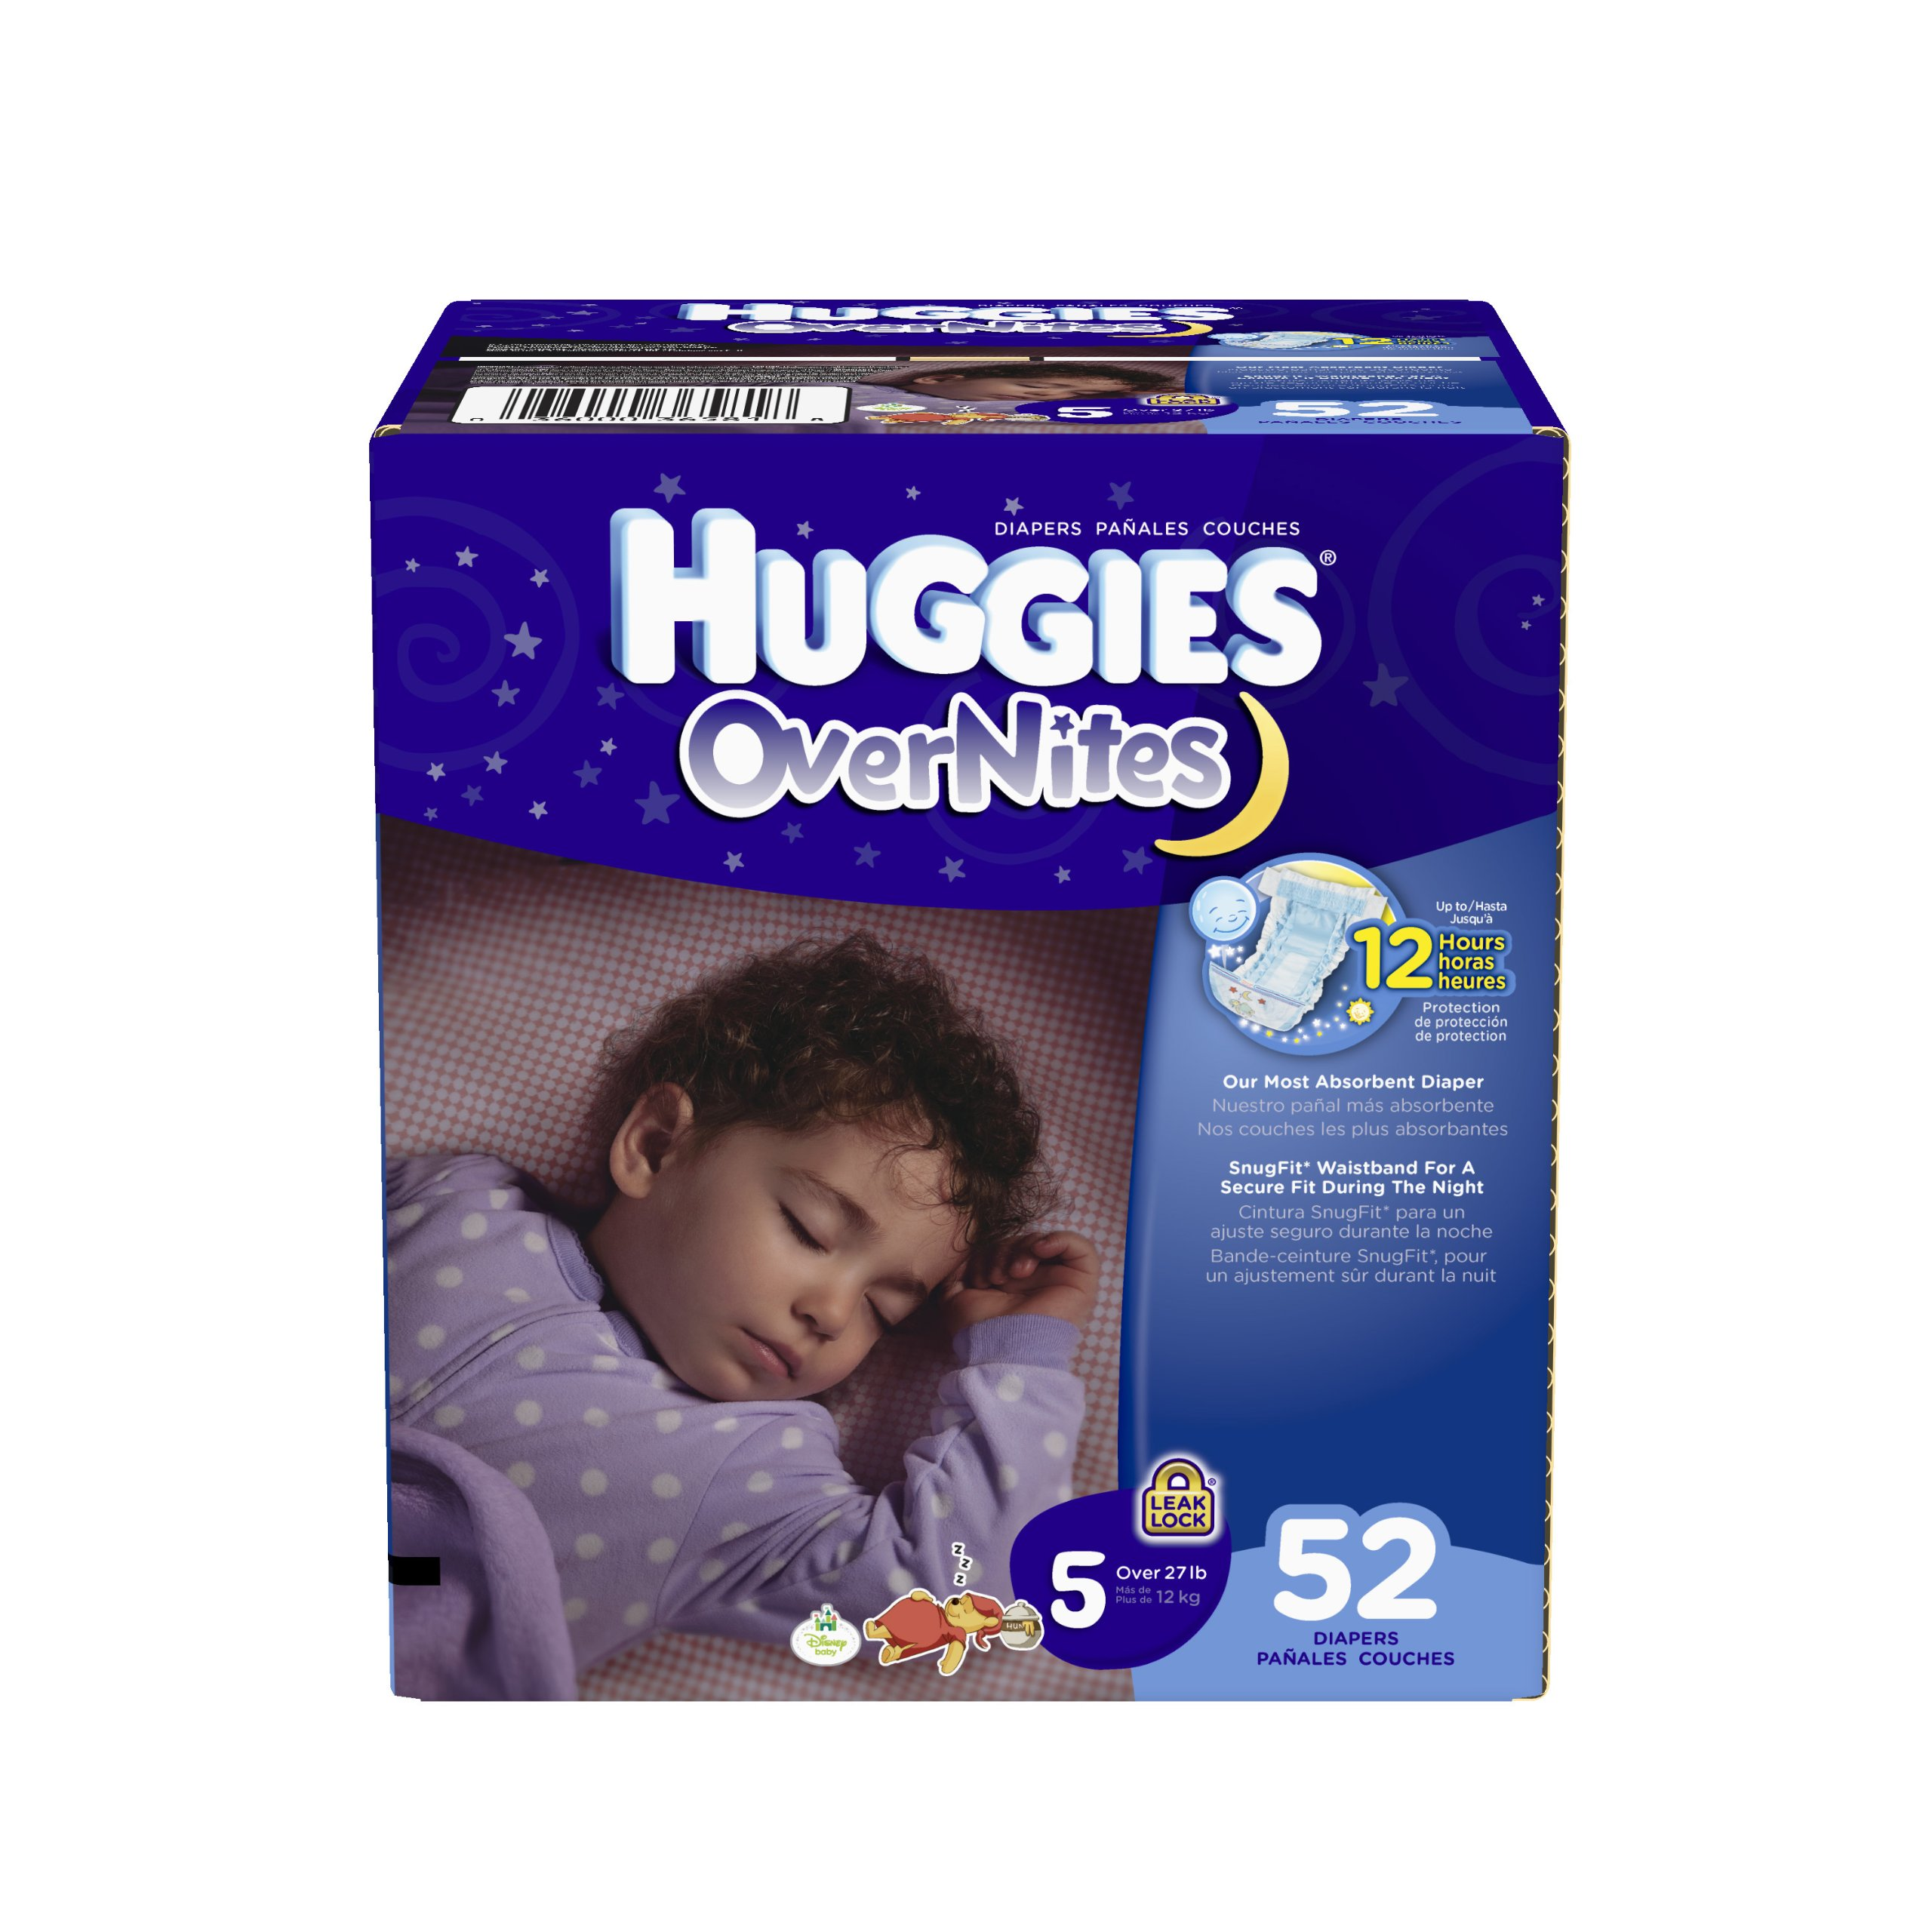 Huggies OverNites Diapers, Size 5, Big Pack, 52 Count by HUGGIES